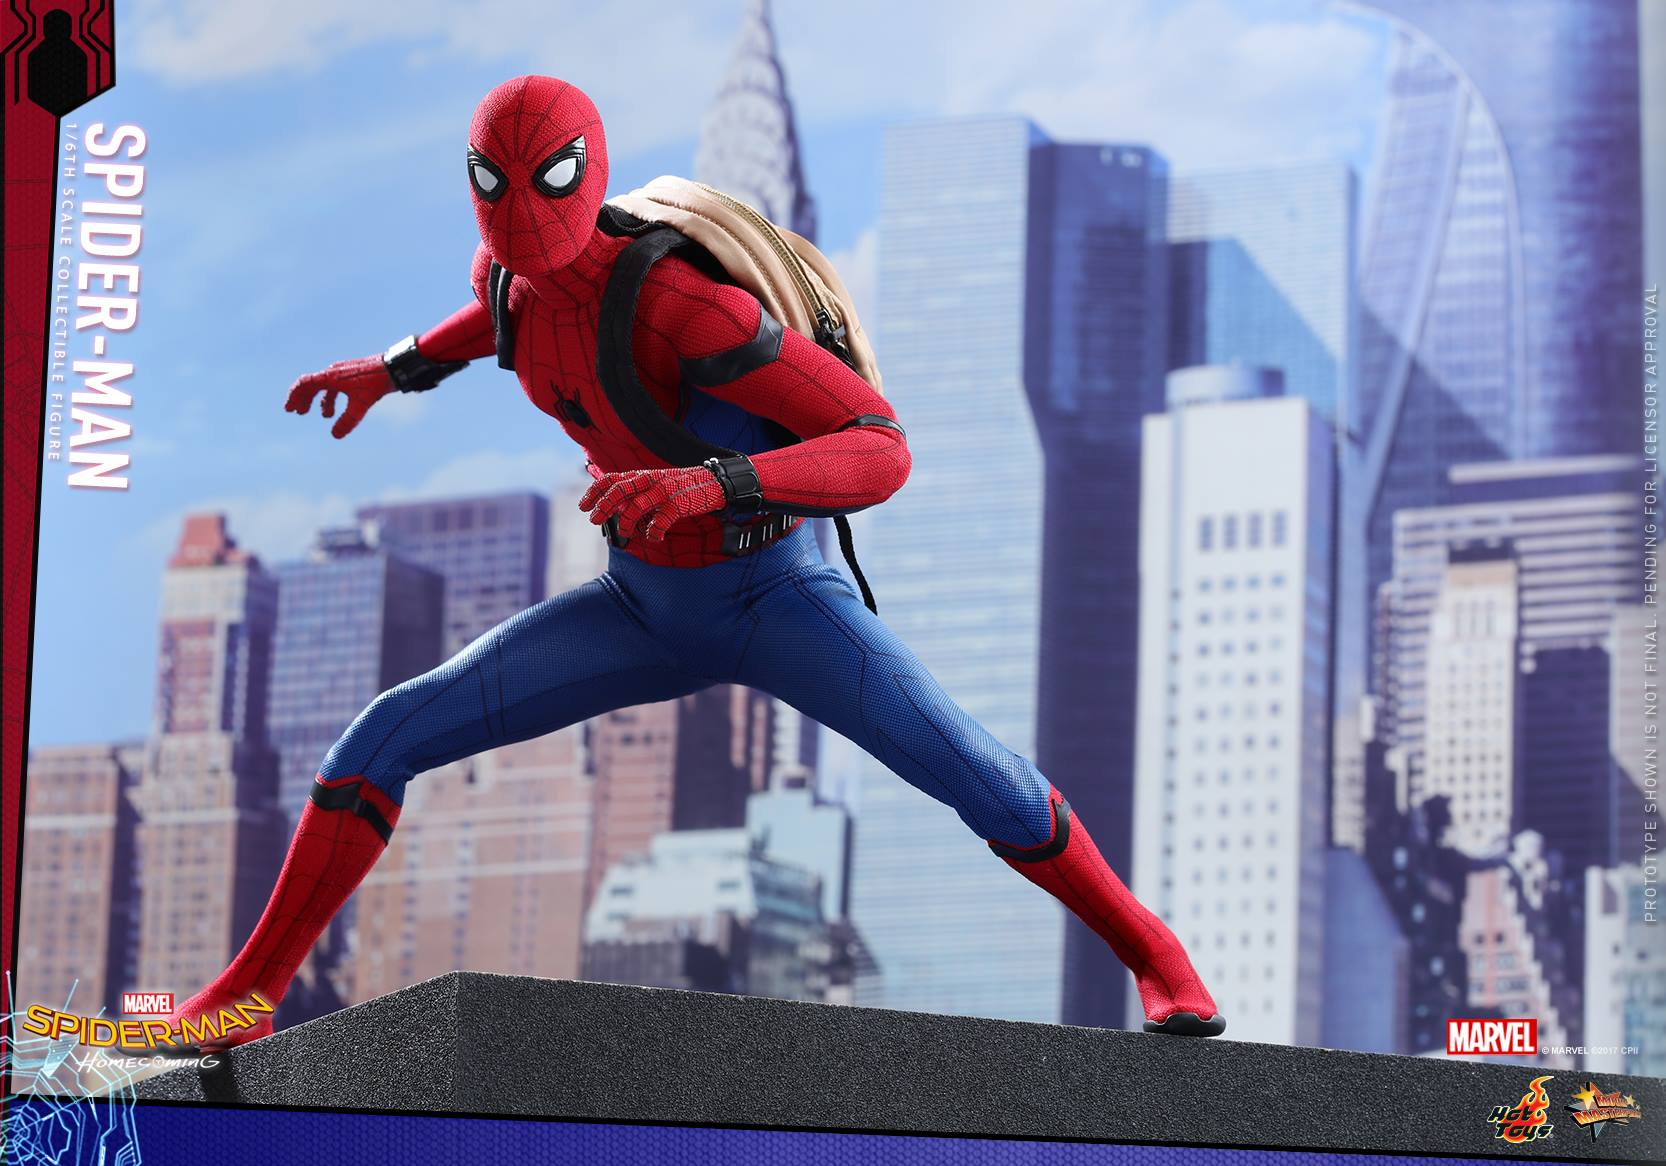 Spider-Man: Homecoming Hot Toy